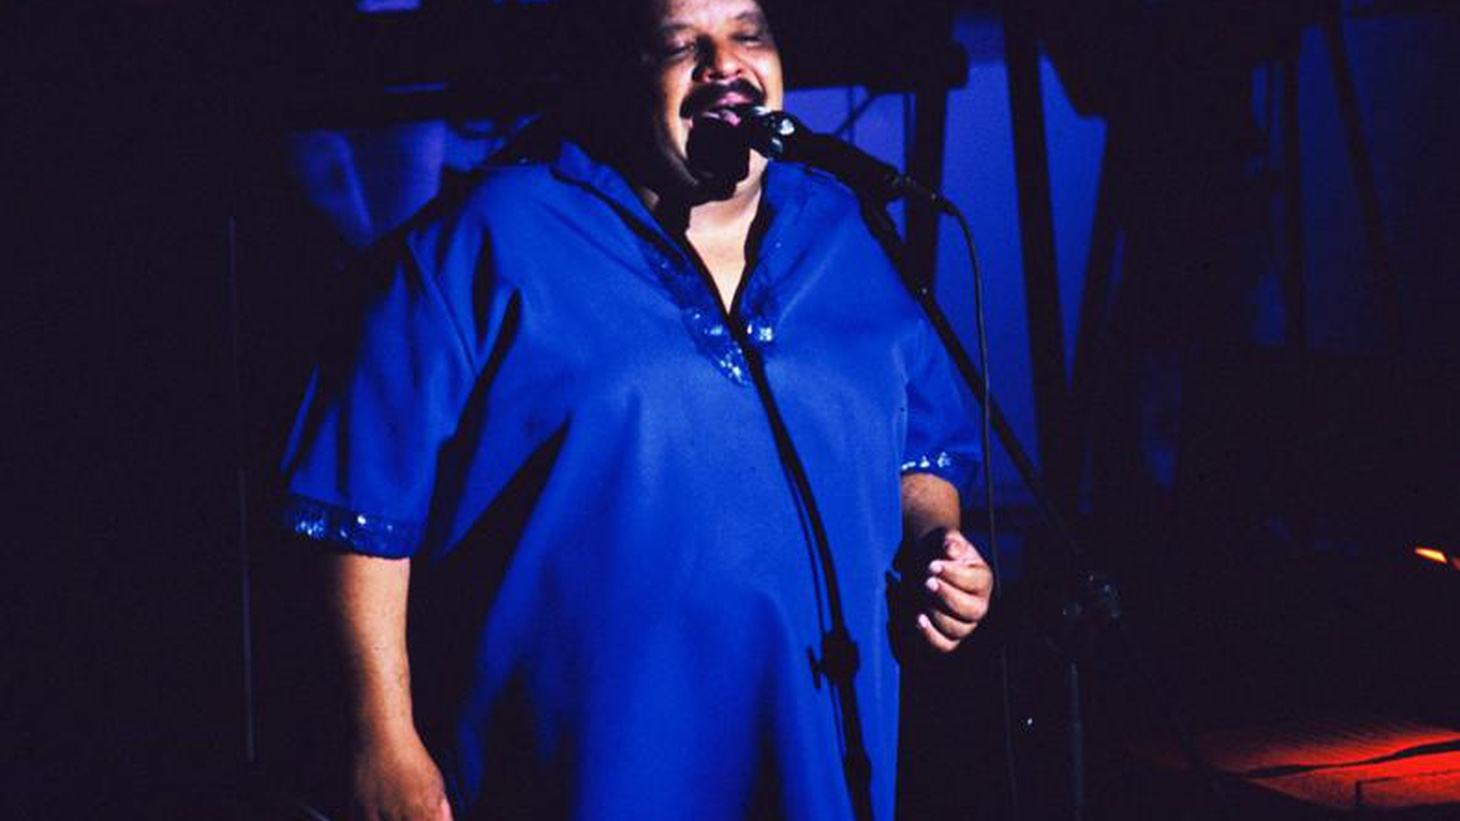 Tim Maia is Brazil's soul godfather, having introduced the genre into the cultural soundscape in the 70's.